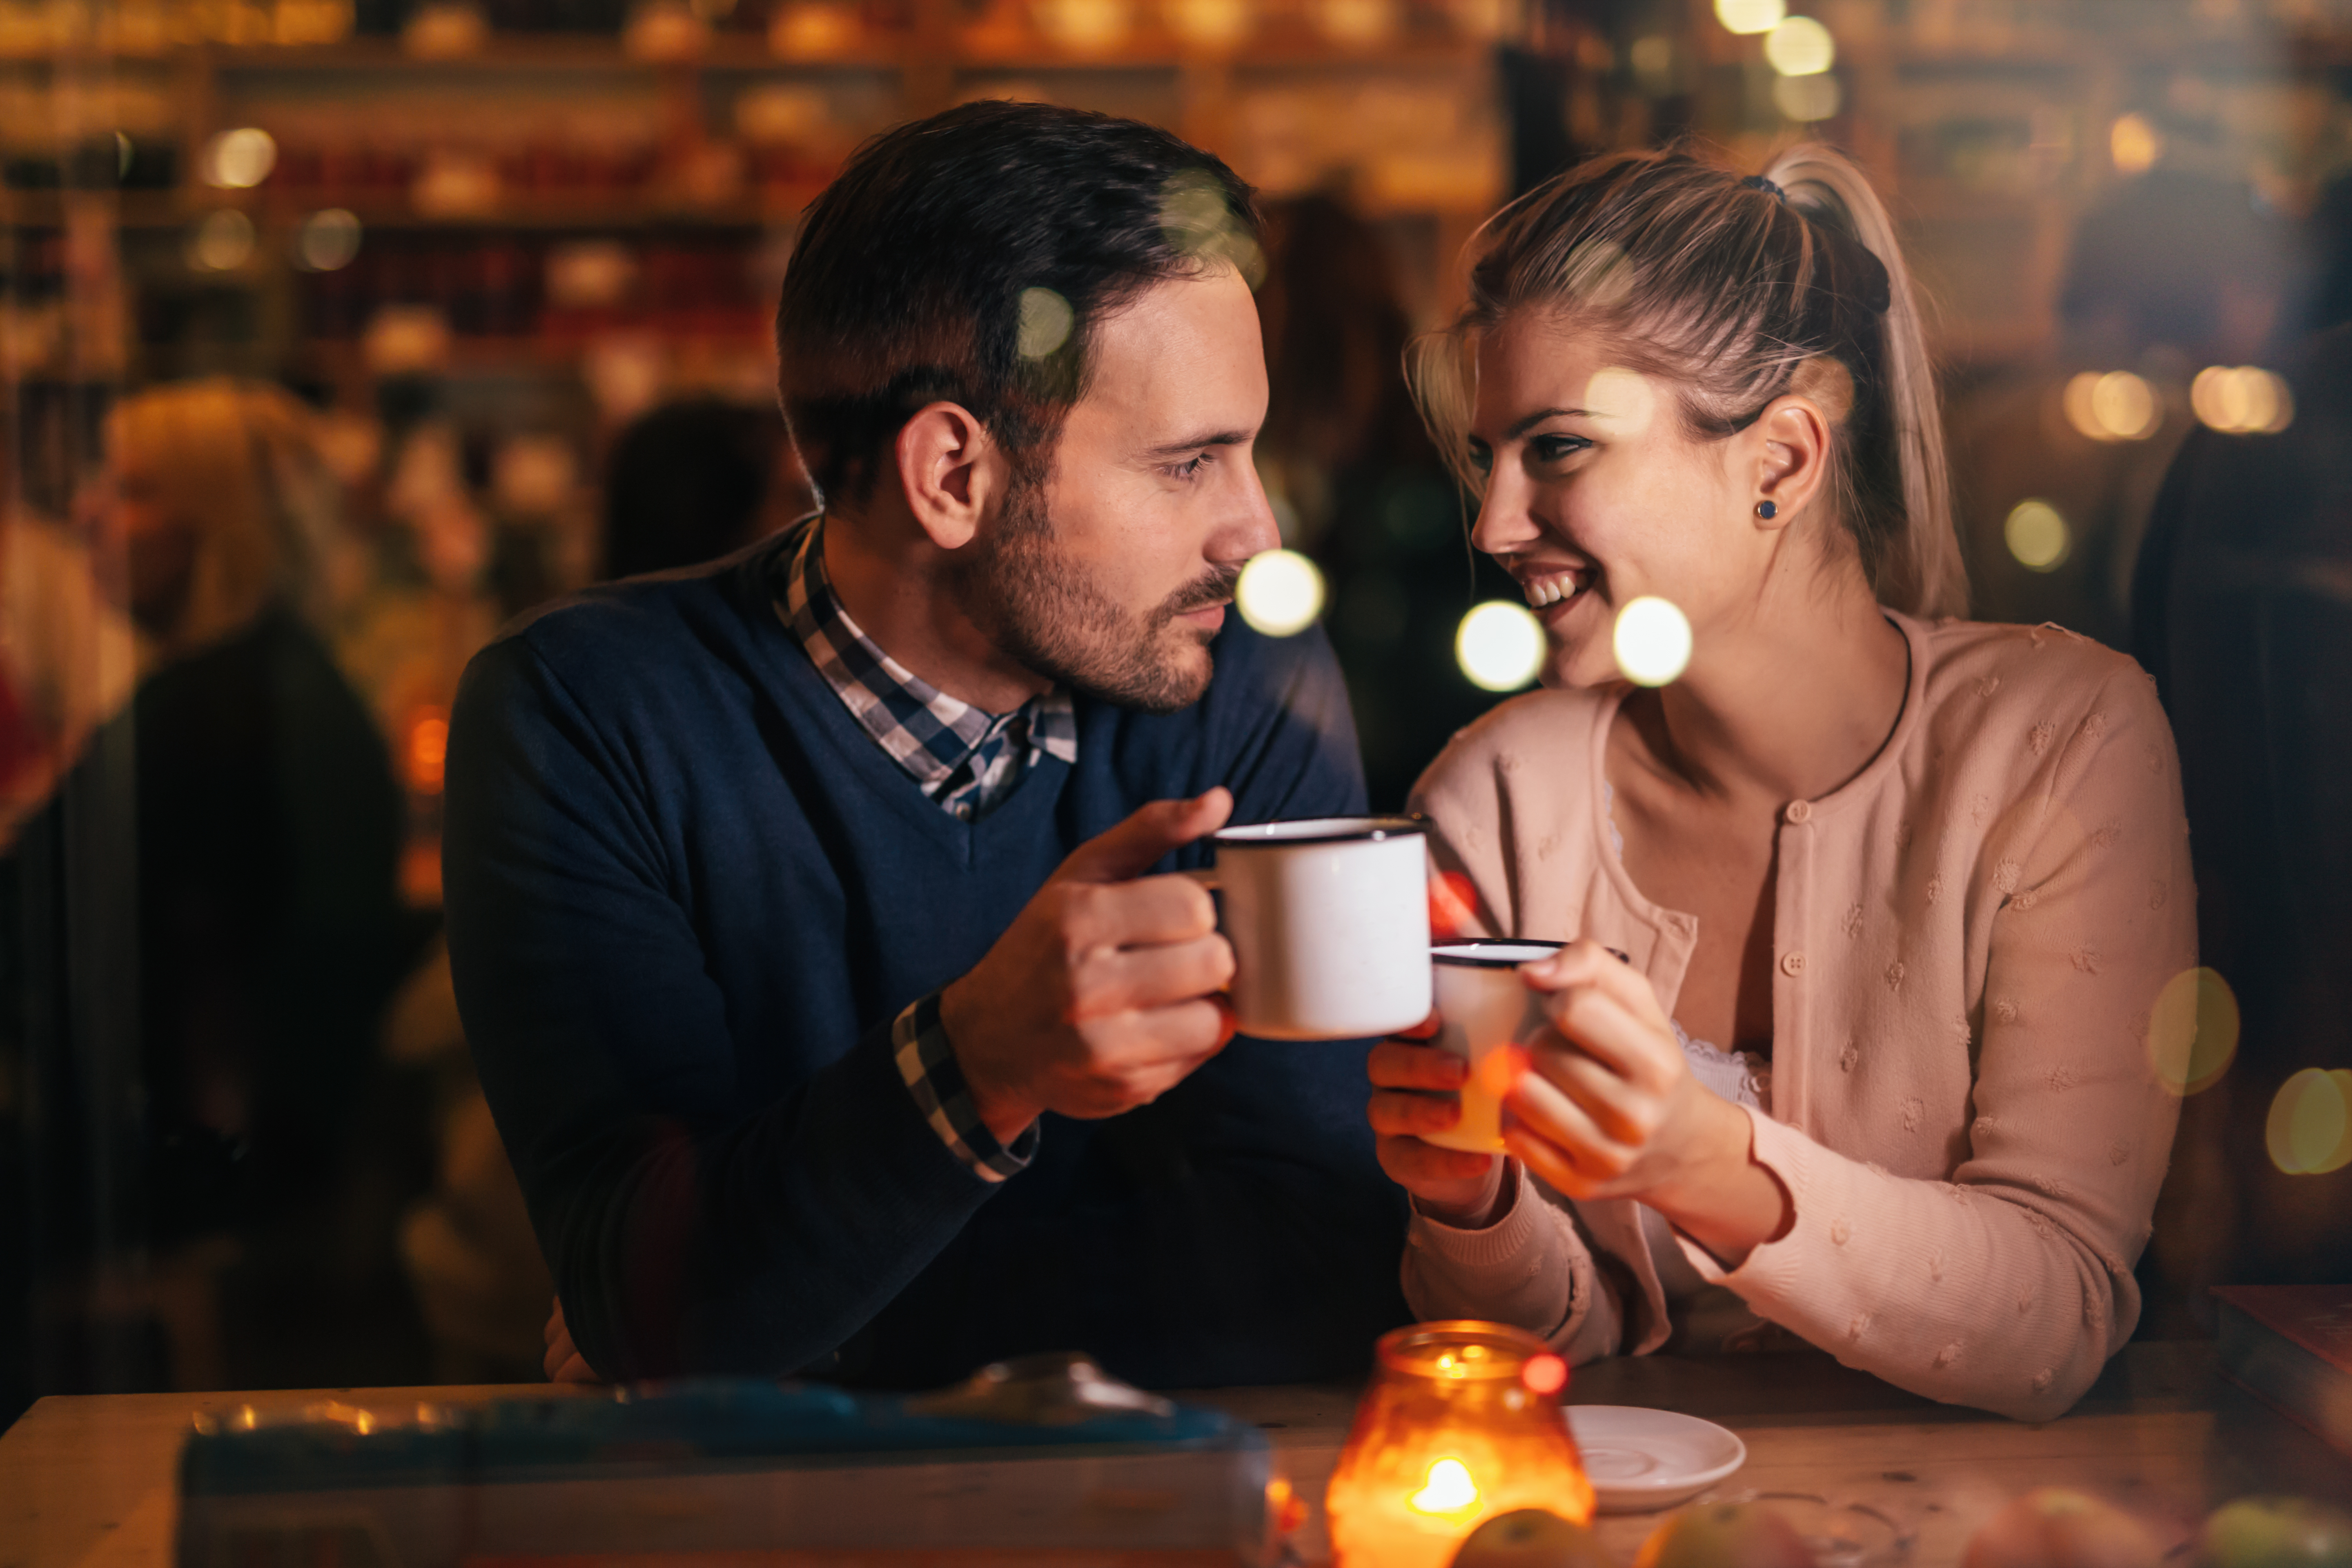 man and woman smiling over coffee, what he wants you to say